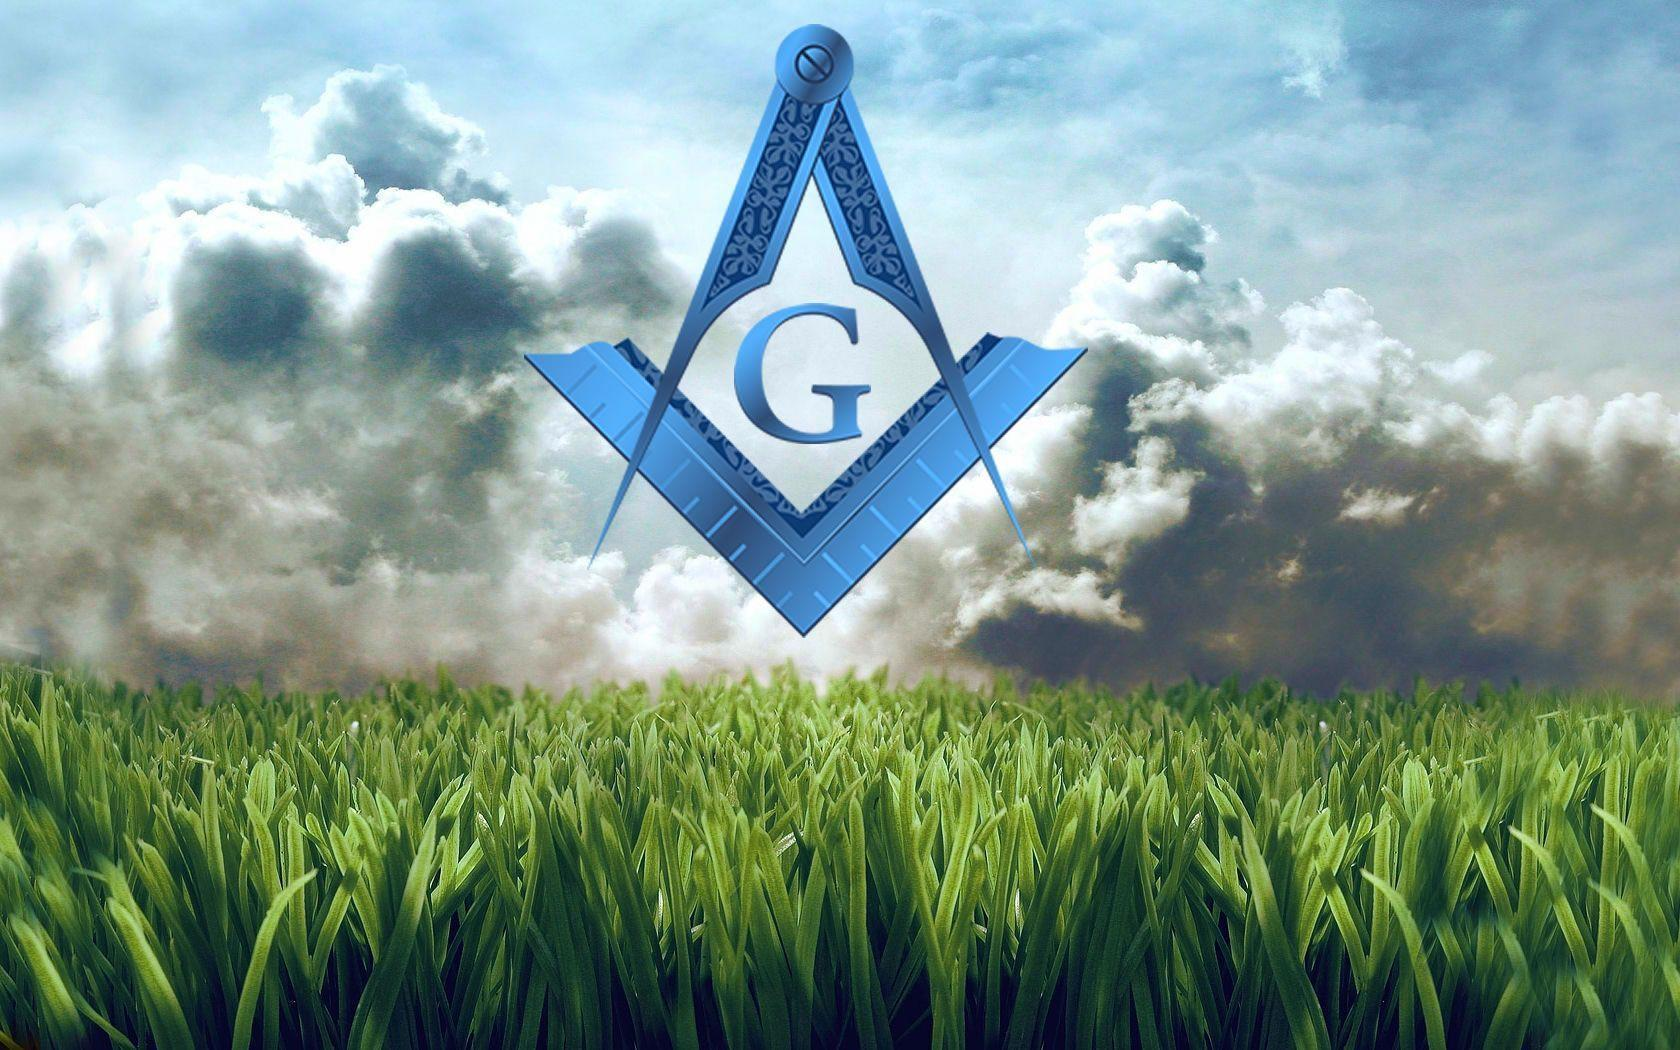 Desktop Wallpaper Free Mason 250 X 200 33 Kb Jpeg